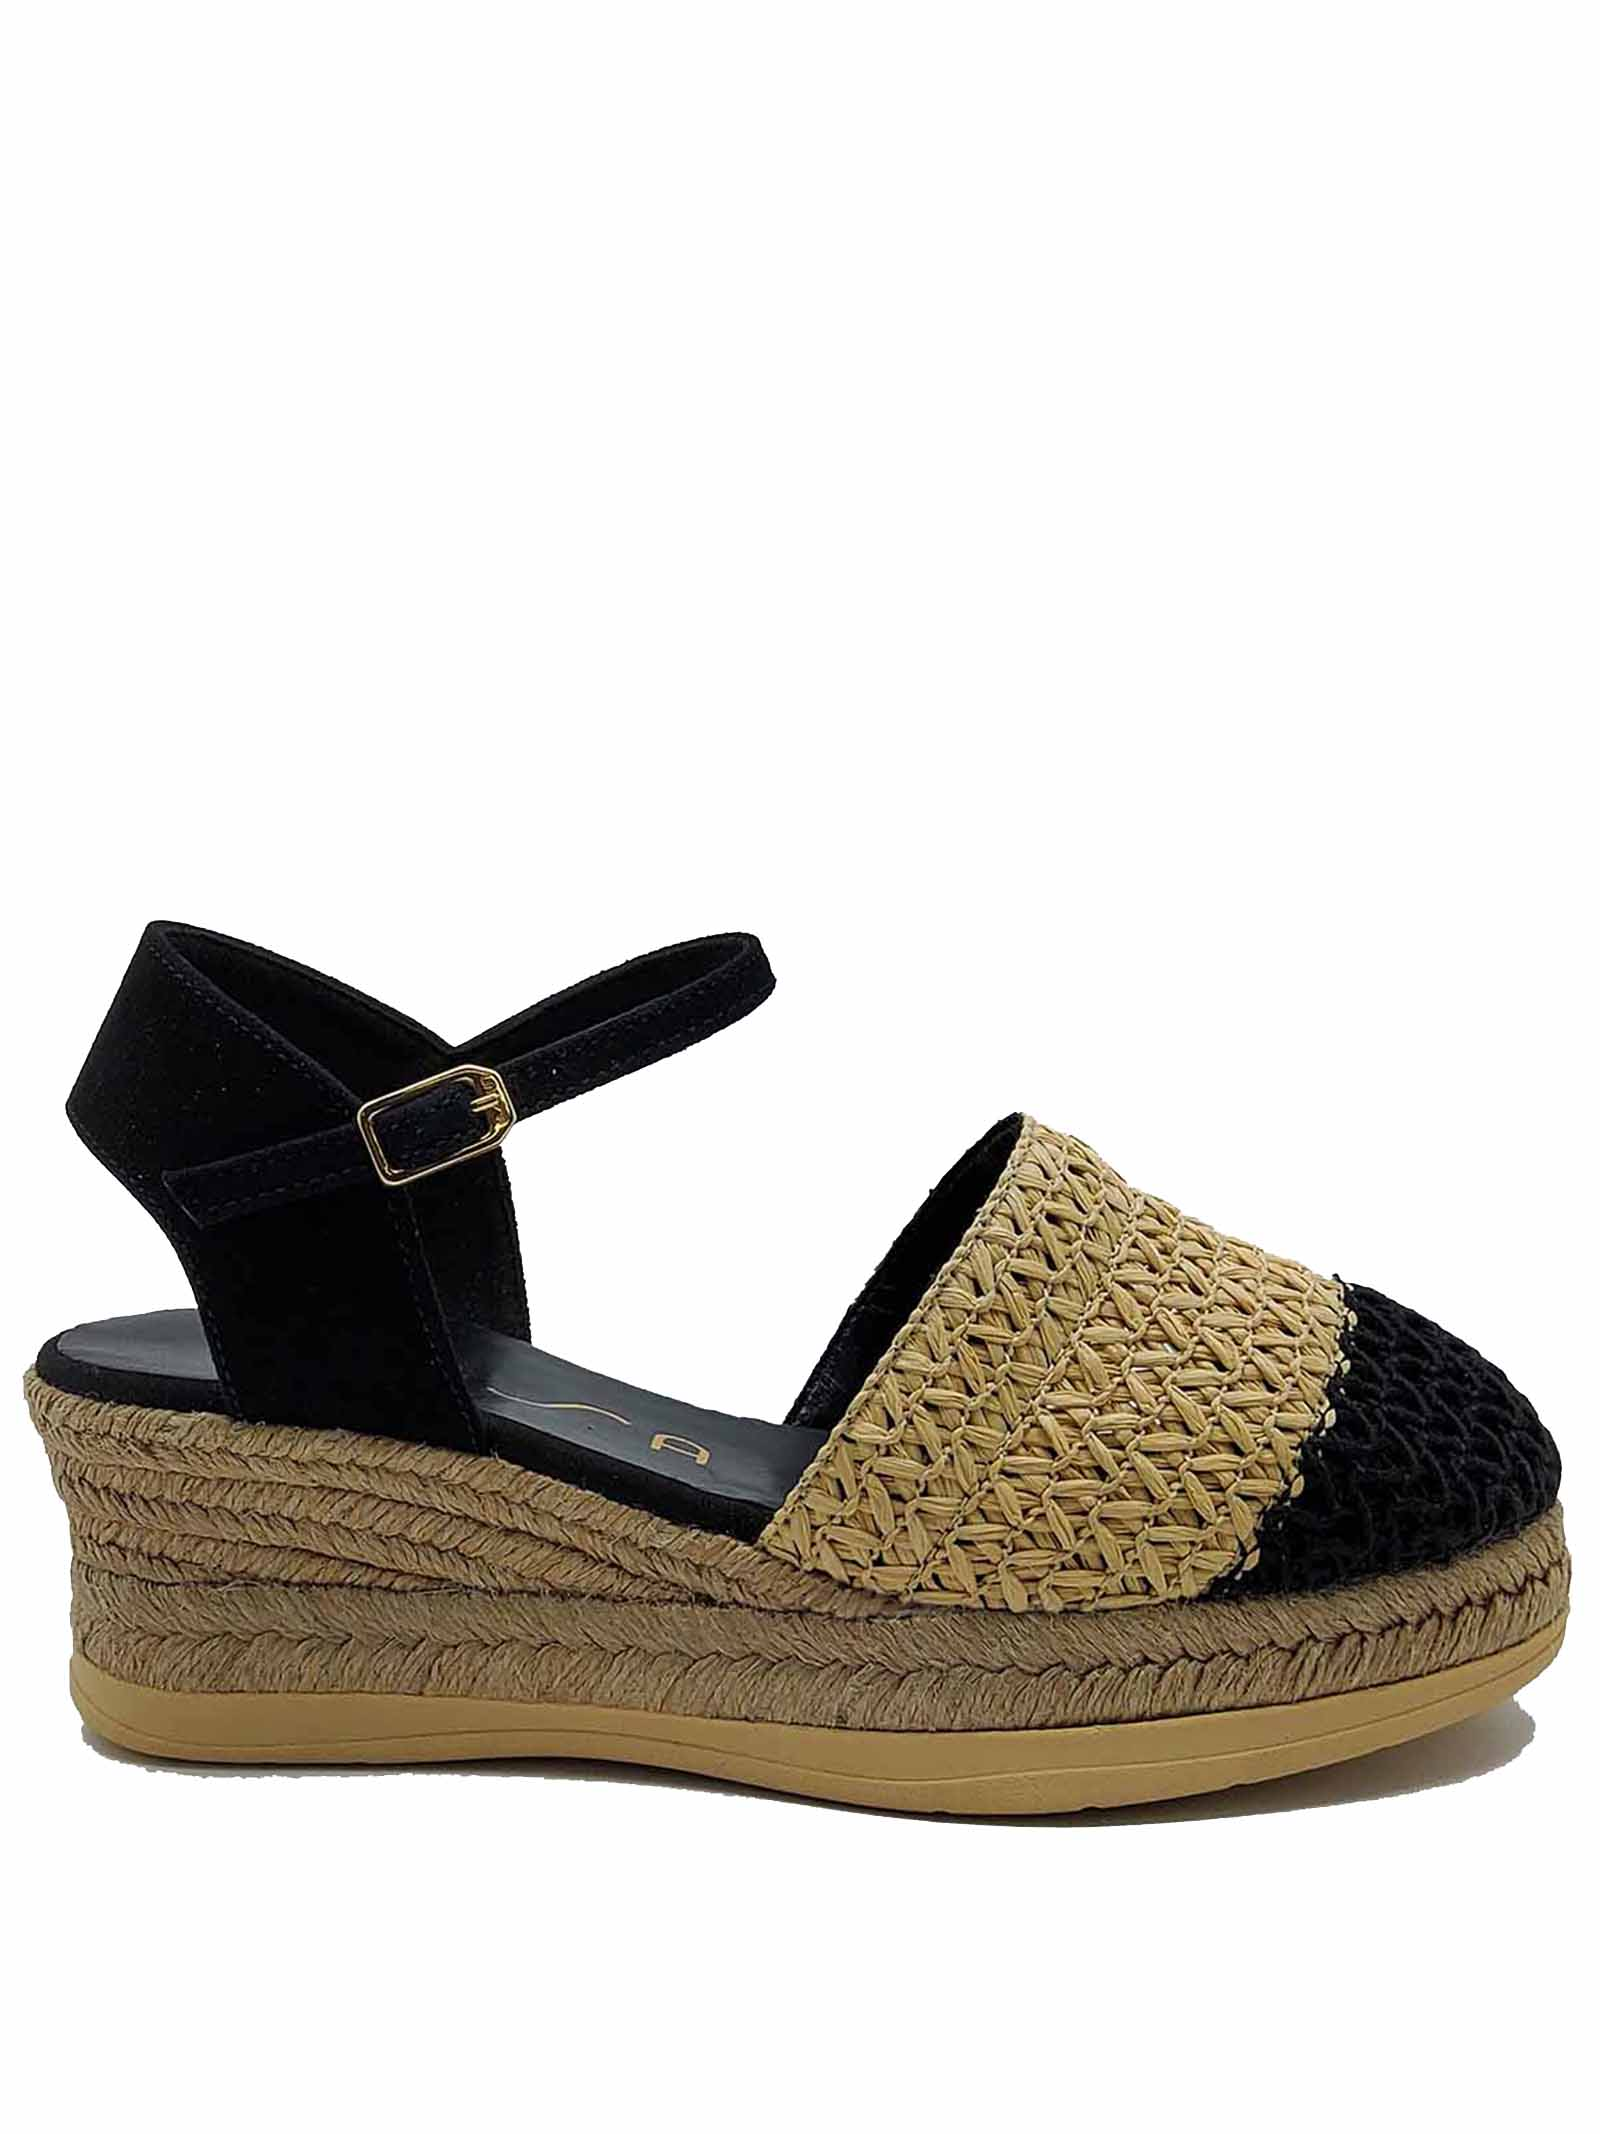 Women's Shoes Espadrilles in Black and Natural Bicolor Woven Fabric with Rope Wedge Unisa   Wedge Sandals   CANCIO001